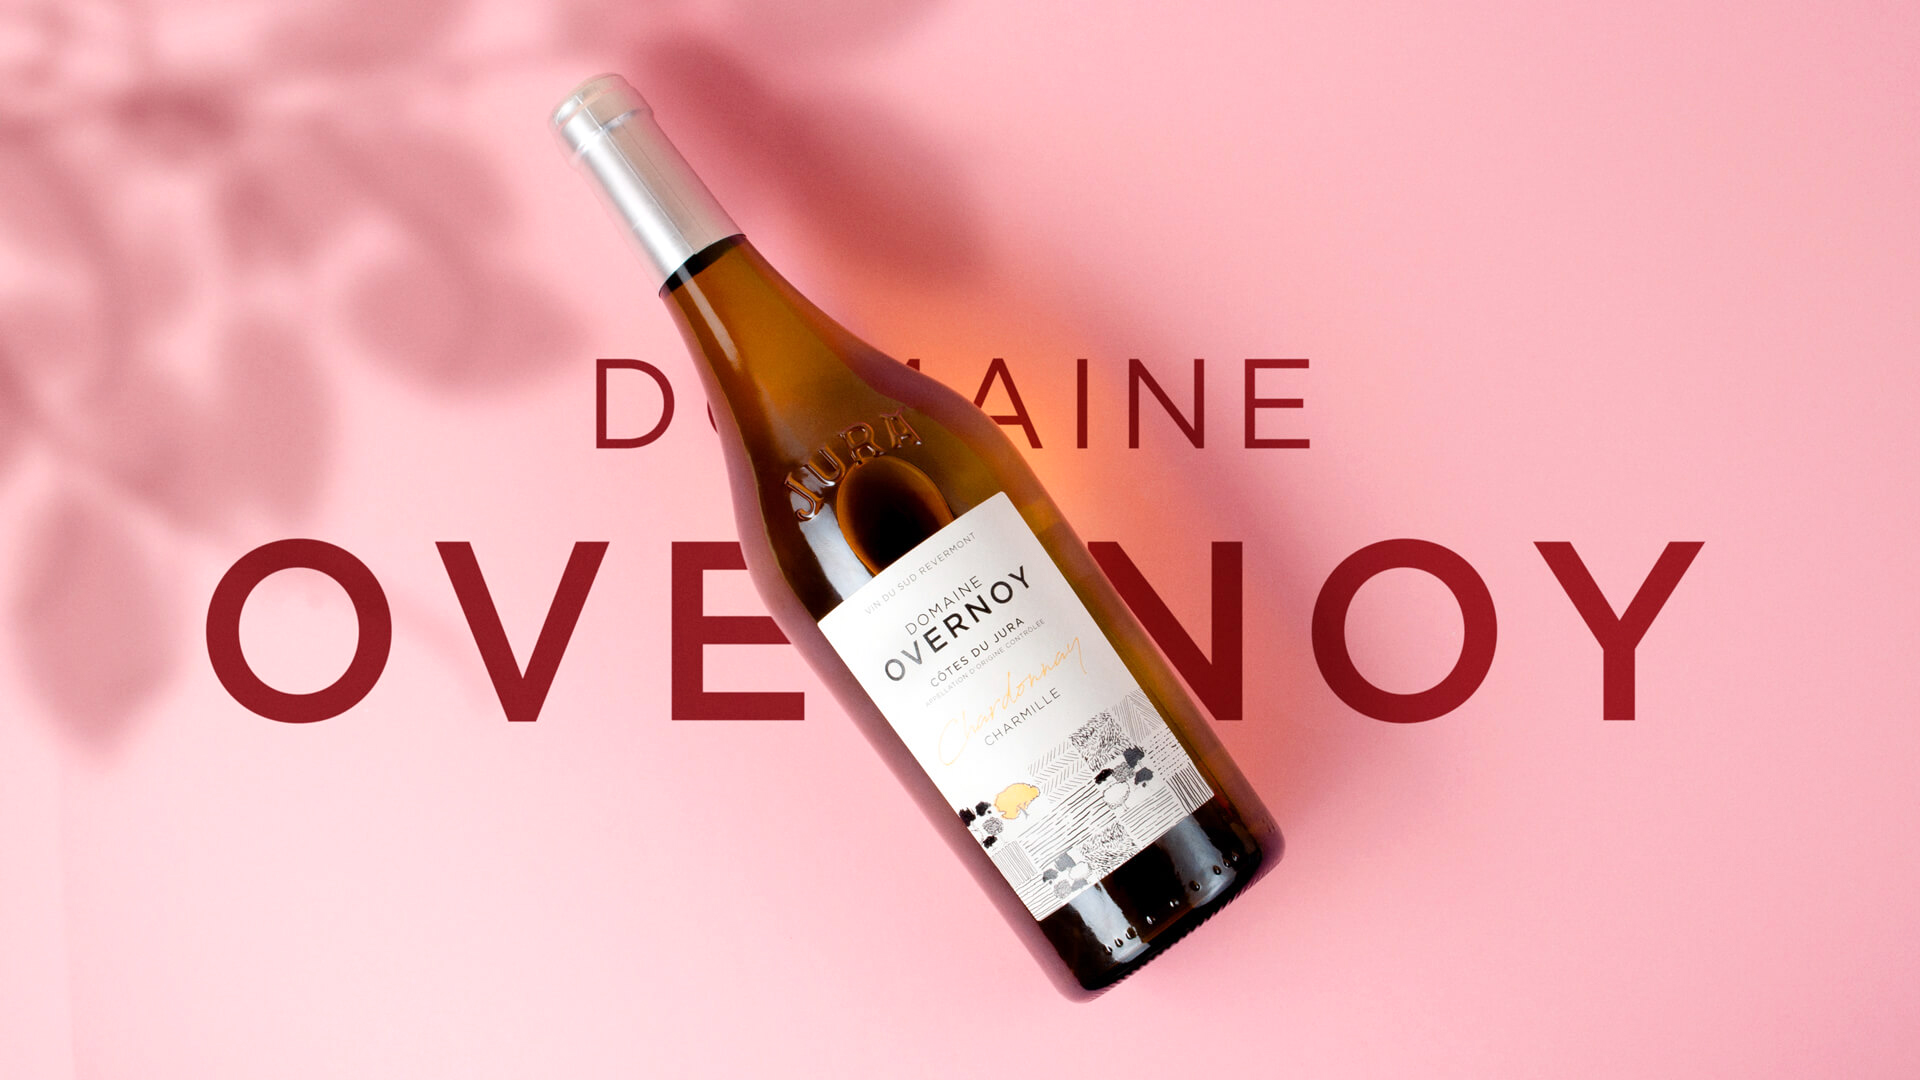 Antoine Peltier Creates the New Labels for Domaine Overnoy's Wine Bottles